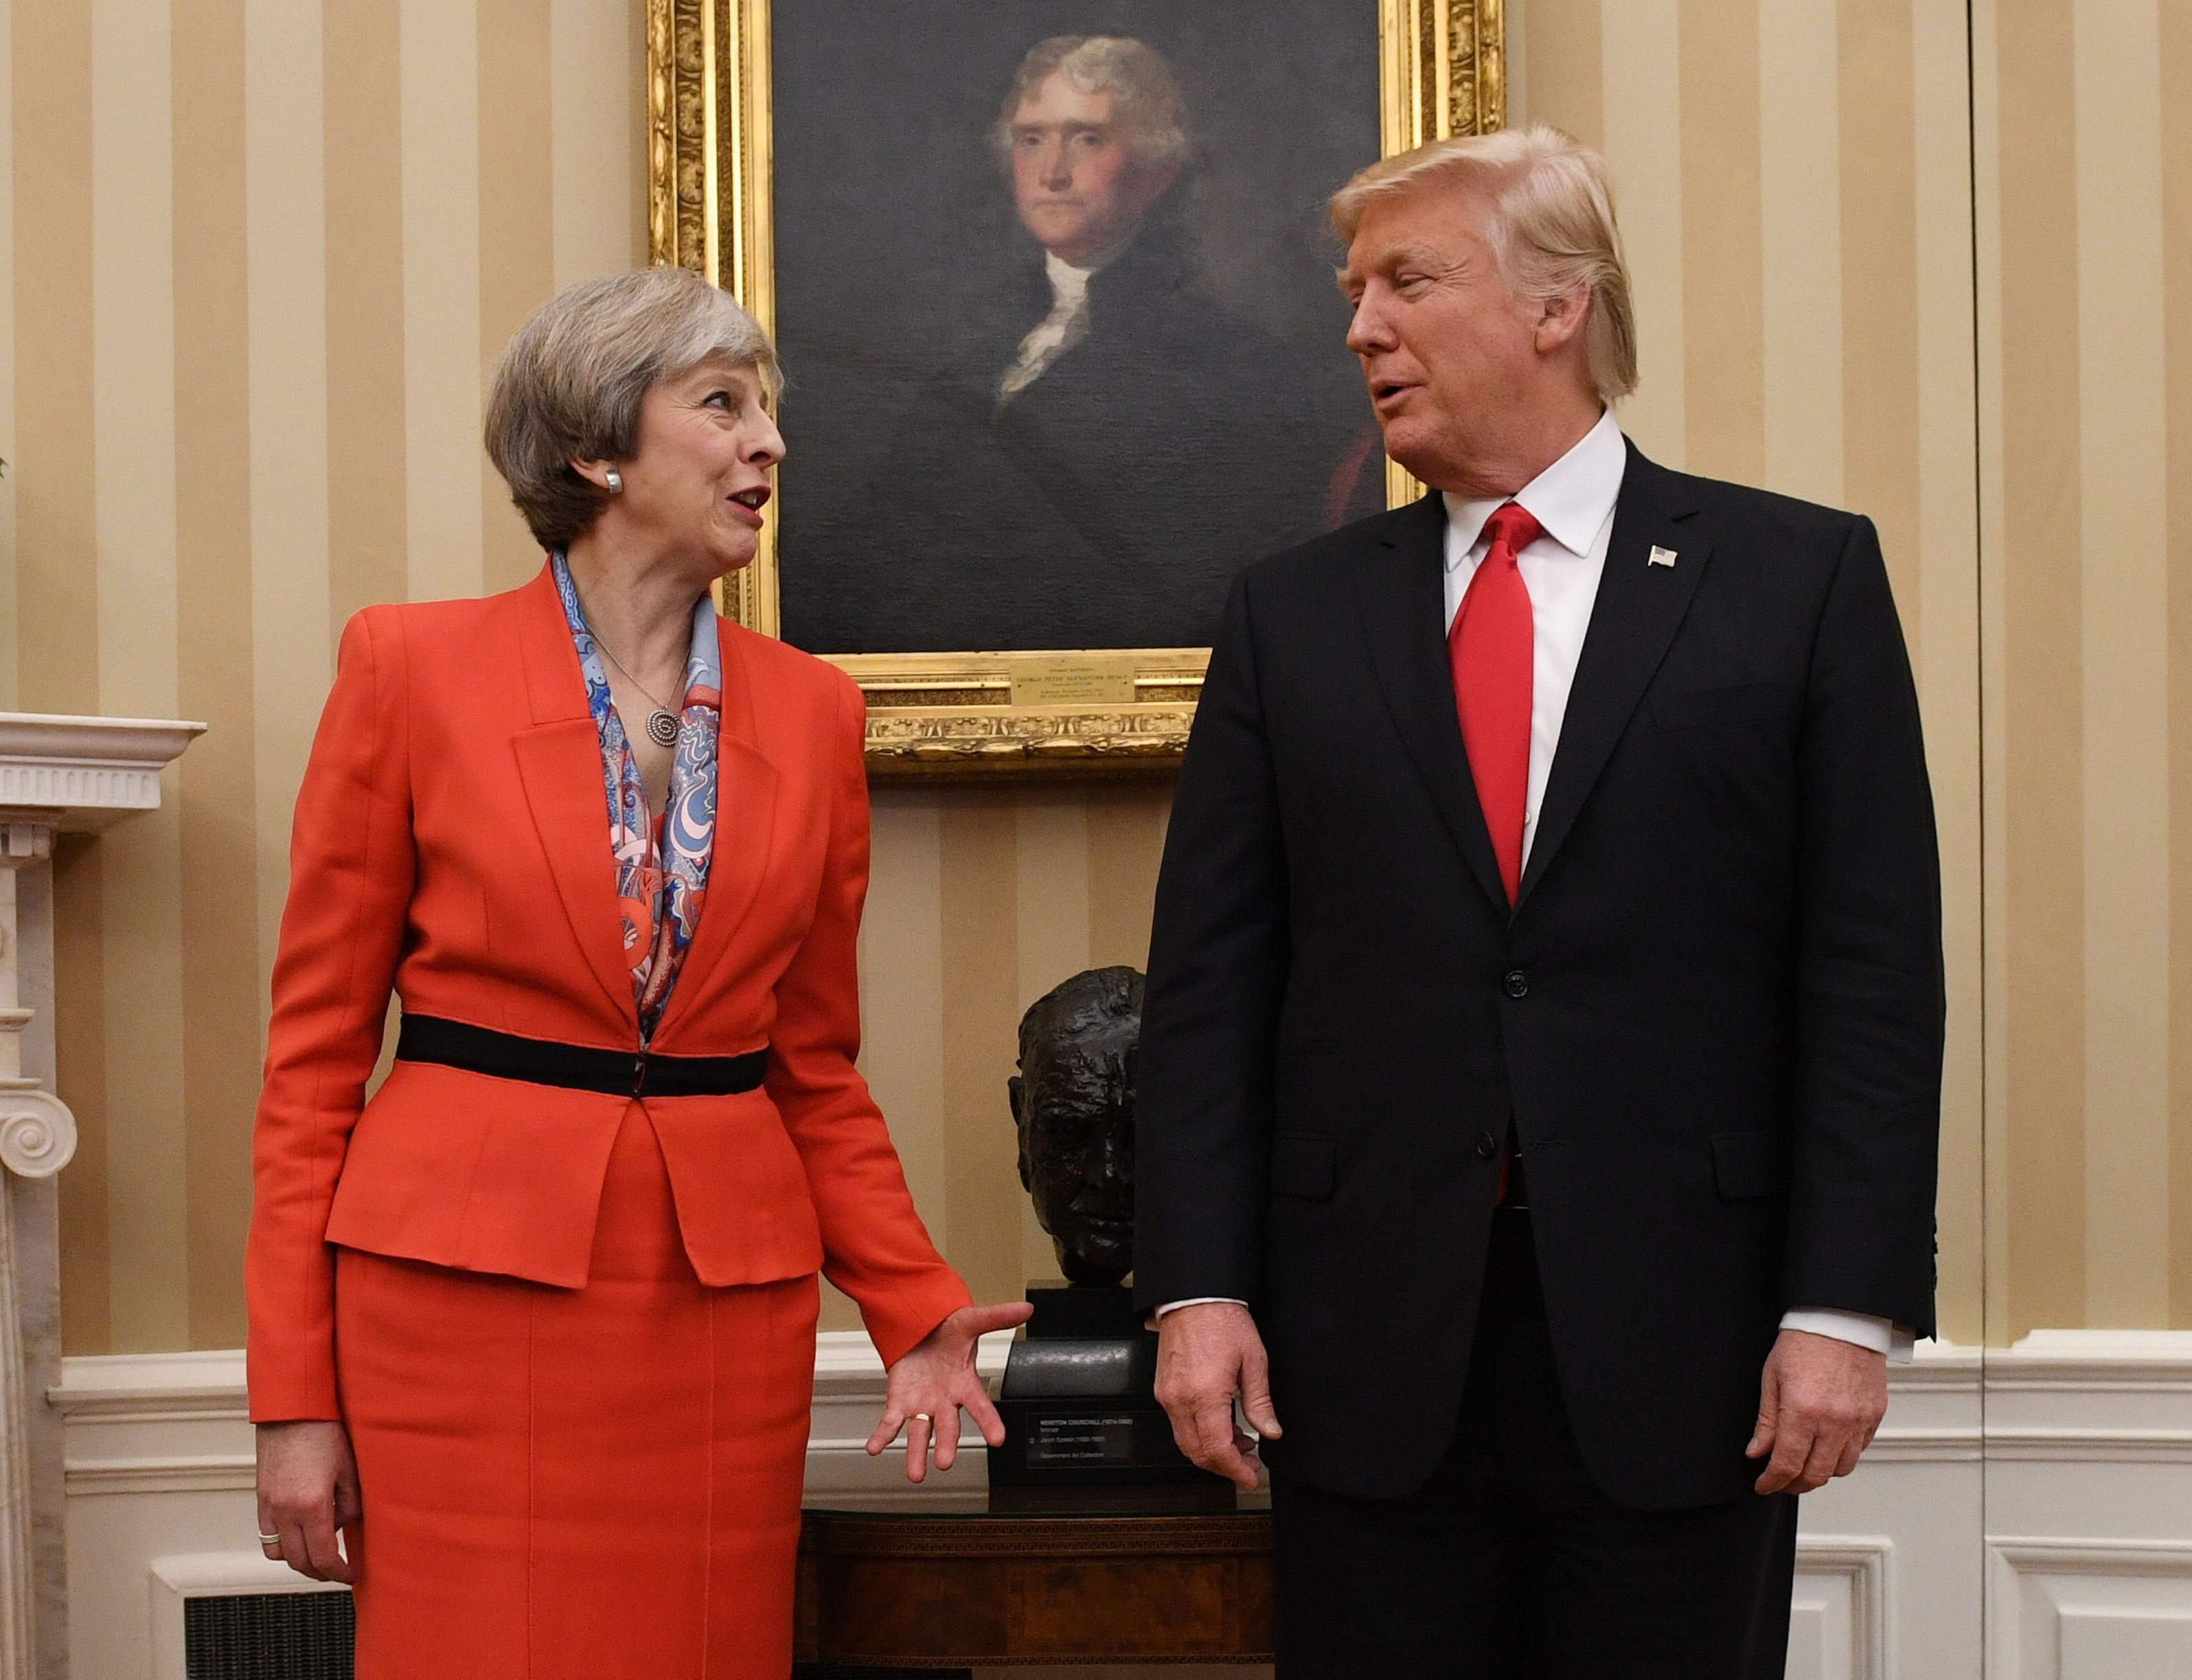 Donald Trump WILL visit United Kingdom  within months as trip finally confirmed